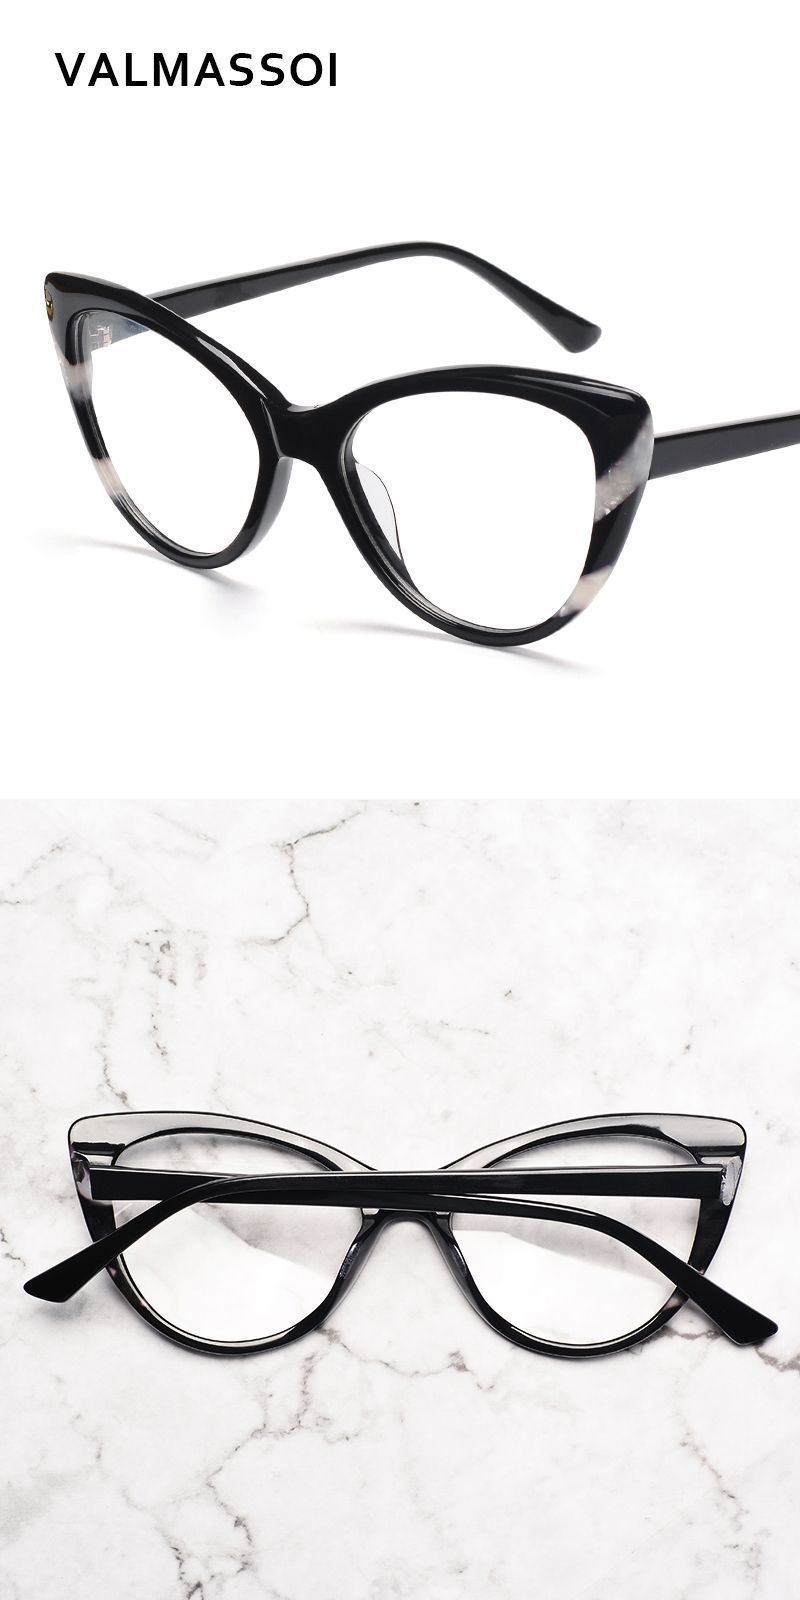 ad7ad91e4827 Acetate women eyewear frames fashion optical designer myopia brand clear eyeglass  frames  11814b  frames  eyewear  accessories  women  acetate  print